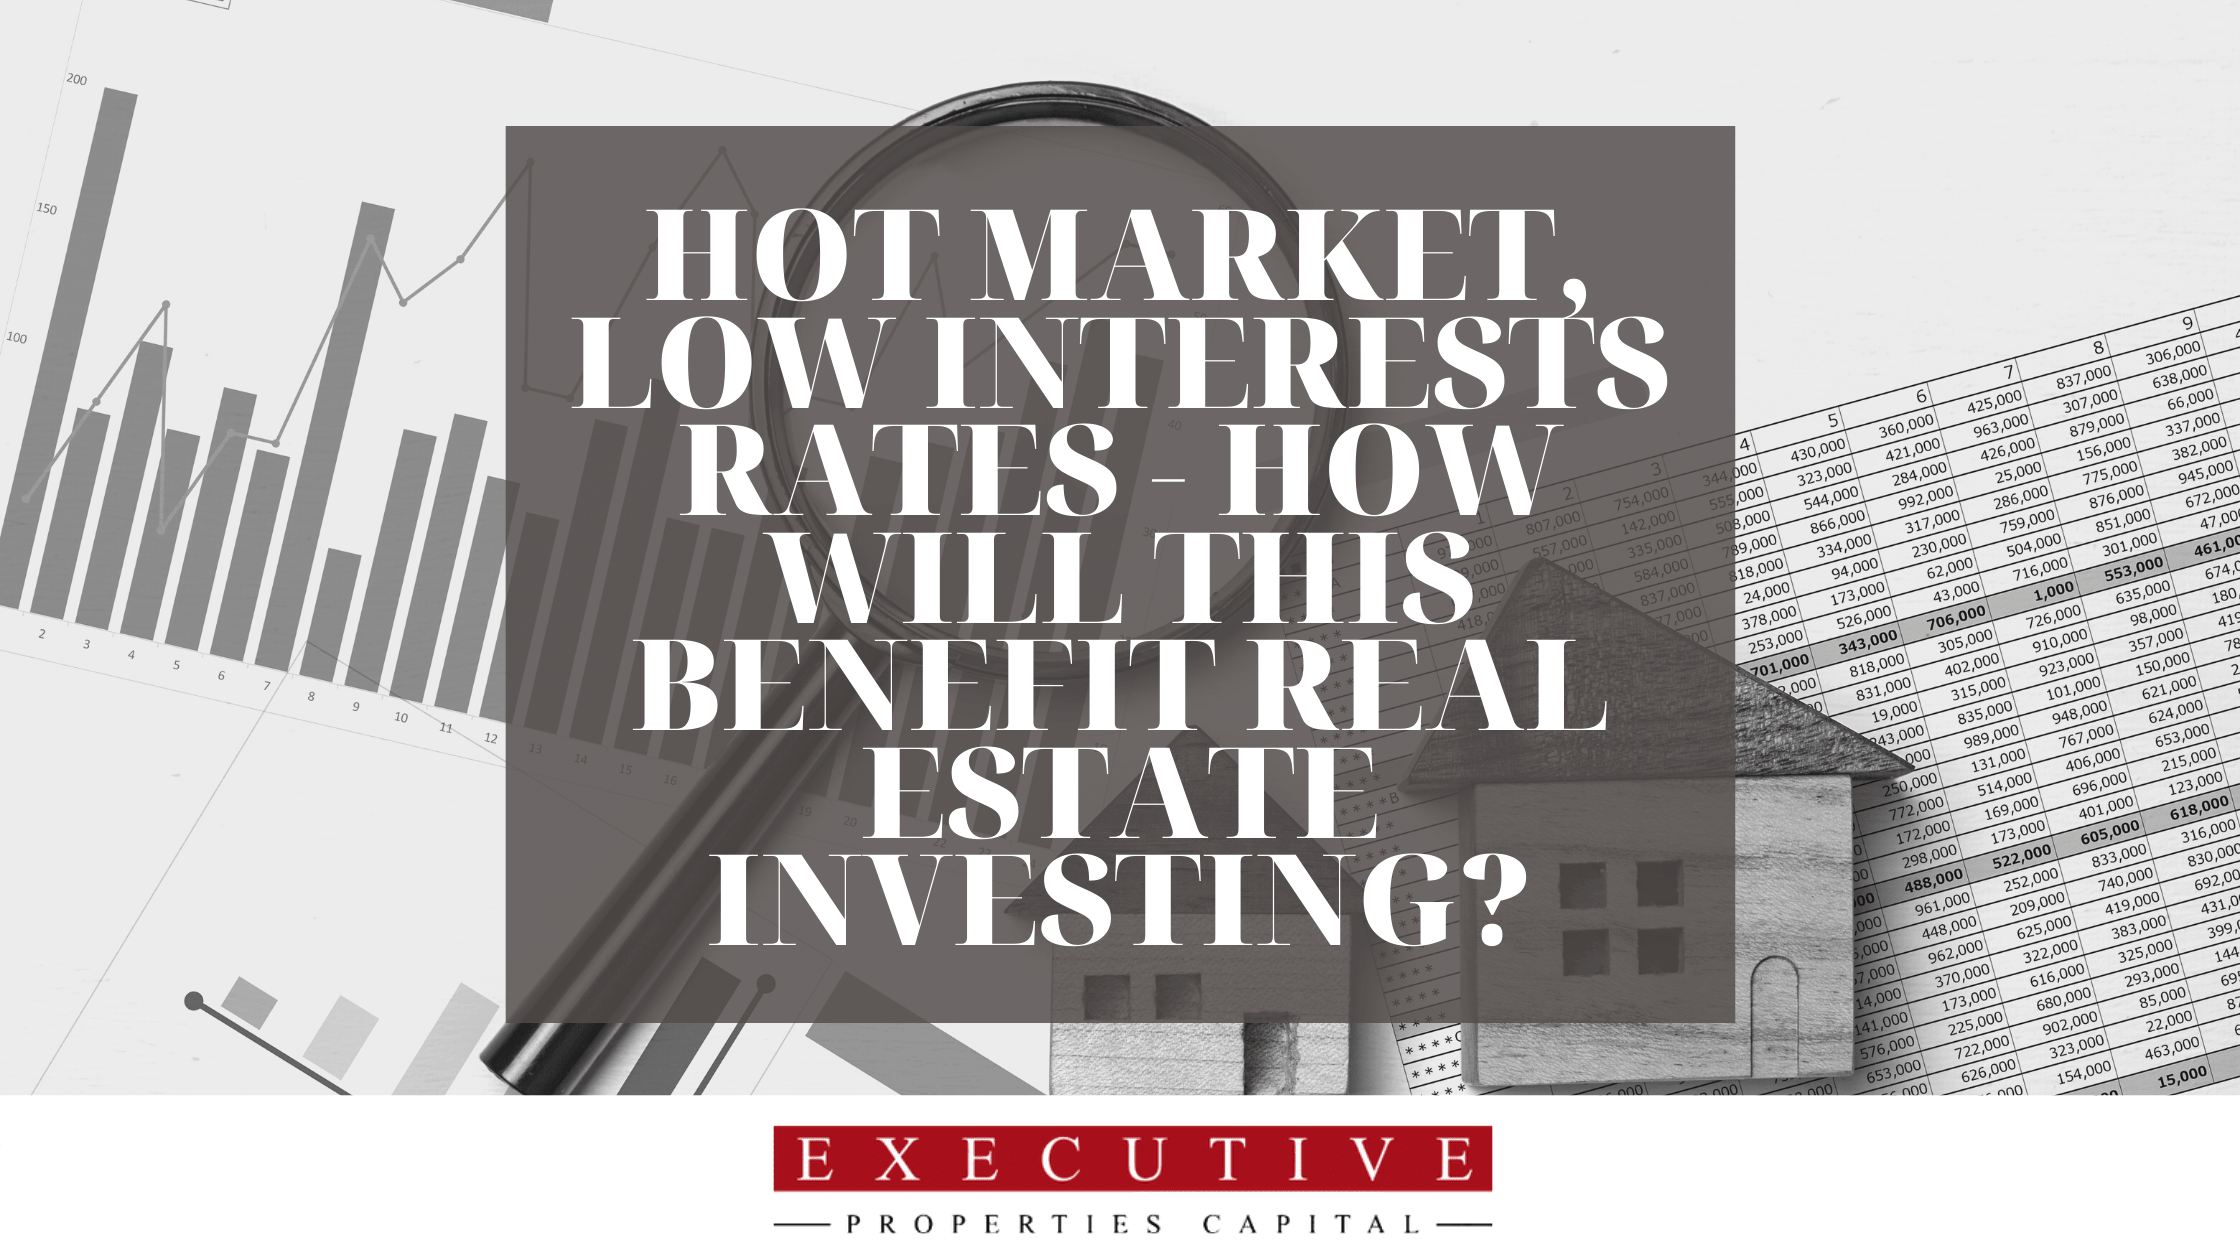 Hot Market, Low Interests Rates - How Will This Benefit Real Estate Investing